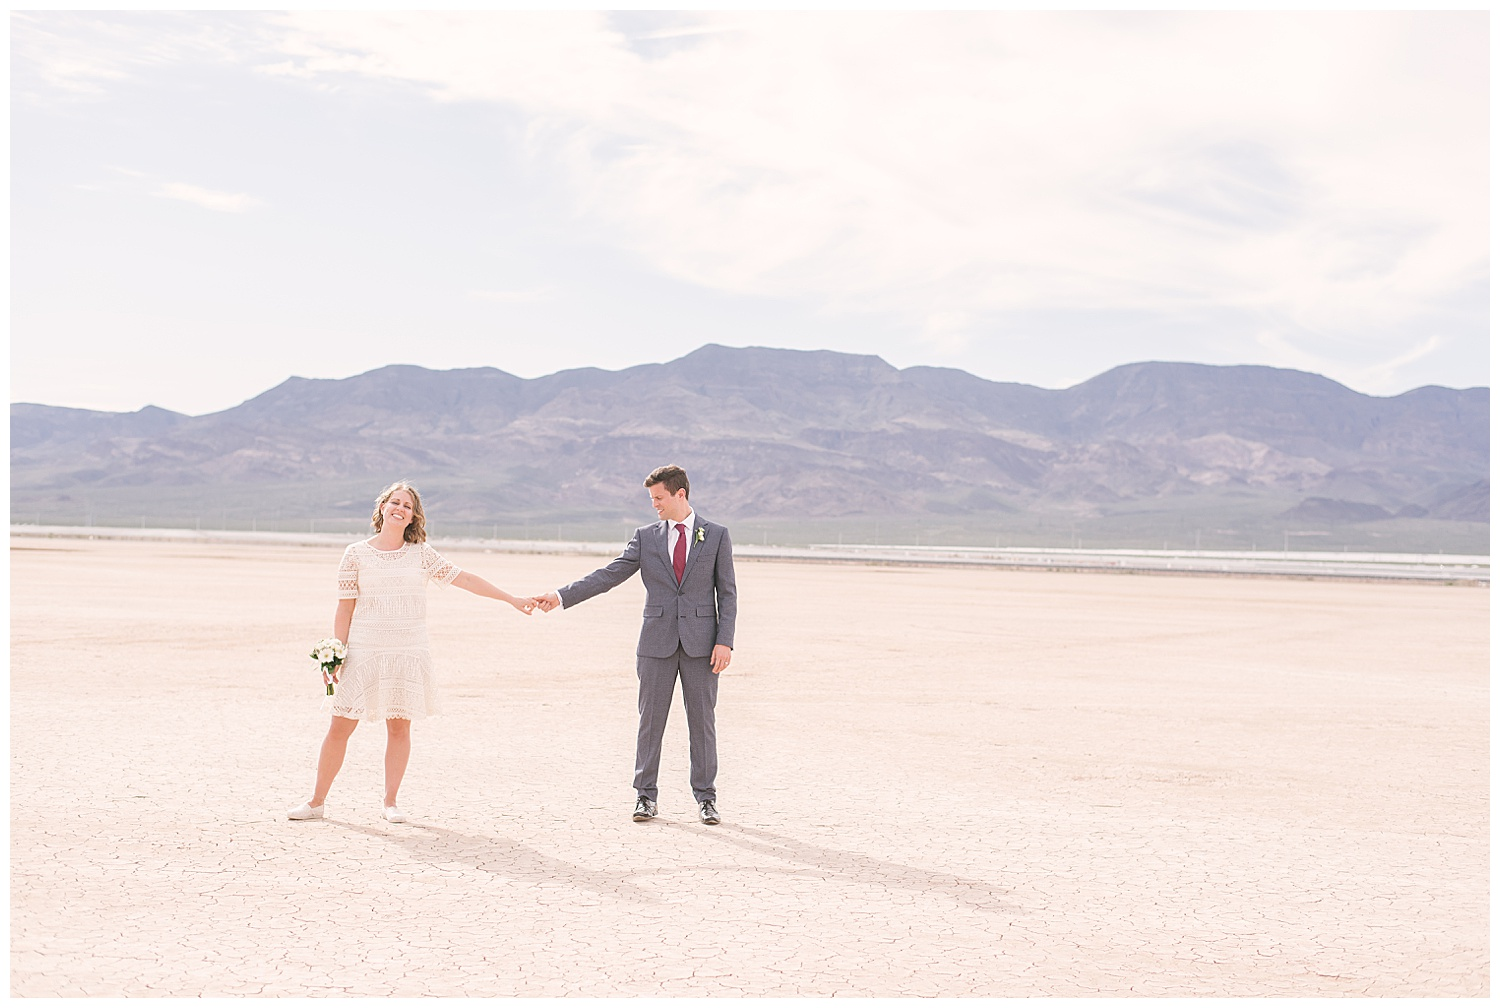 dry-lake-bed-las-vegas-elopement-photographer-01.jpg